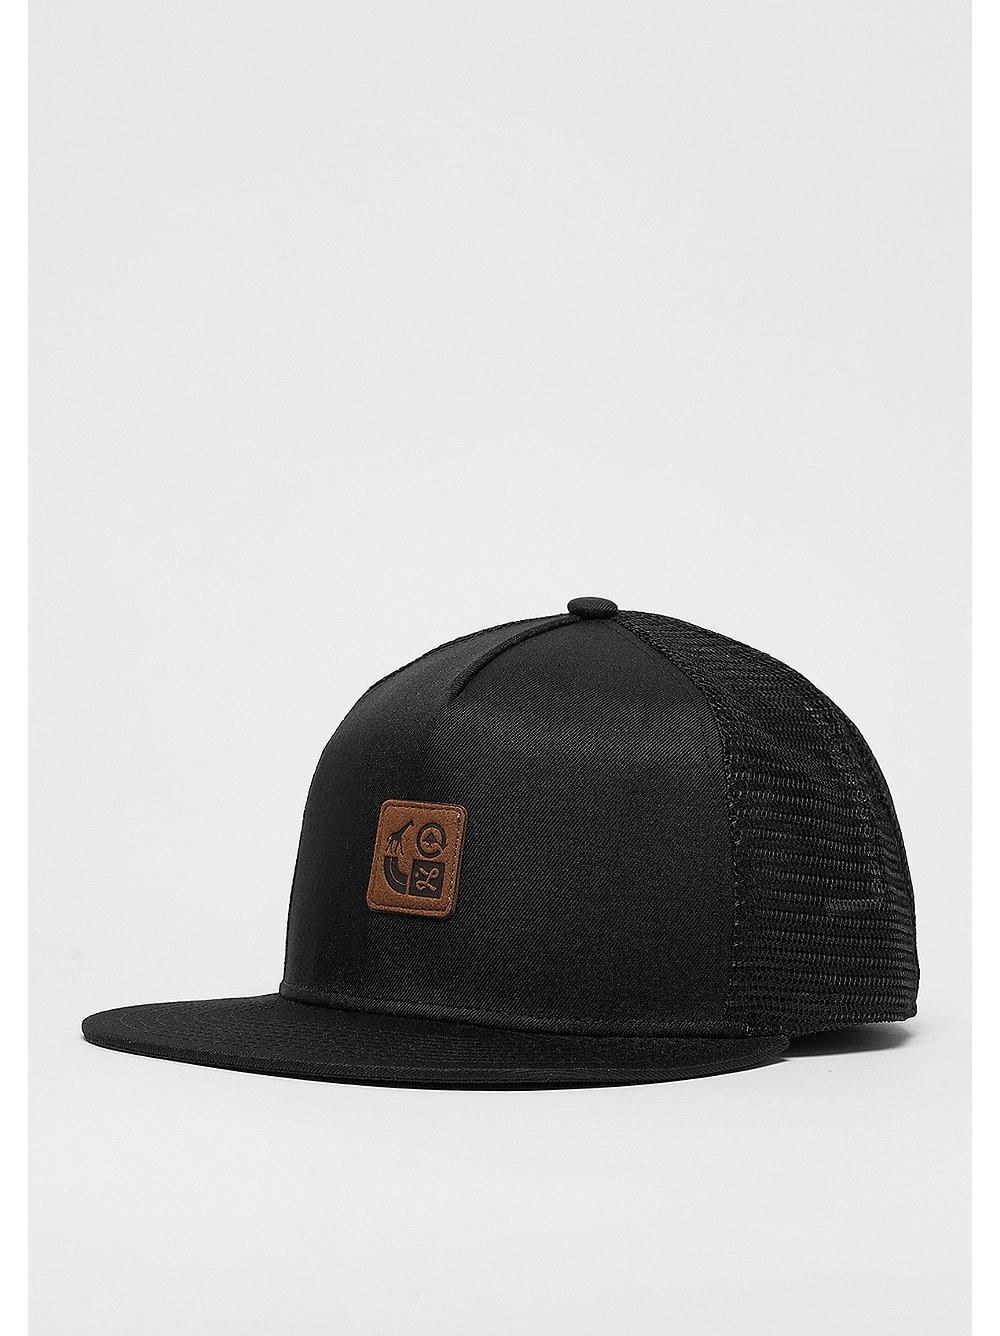 Icons Trucker black